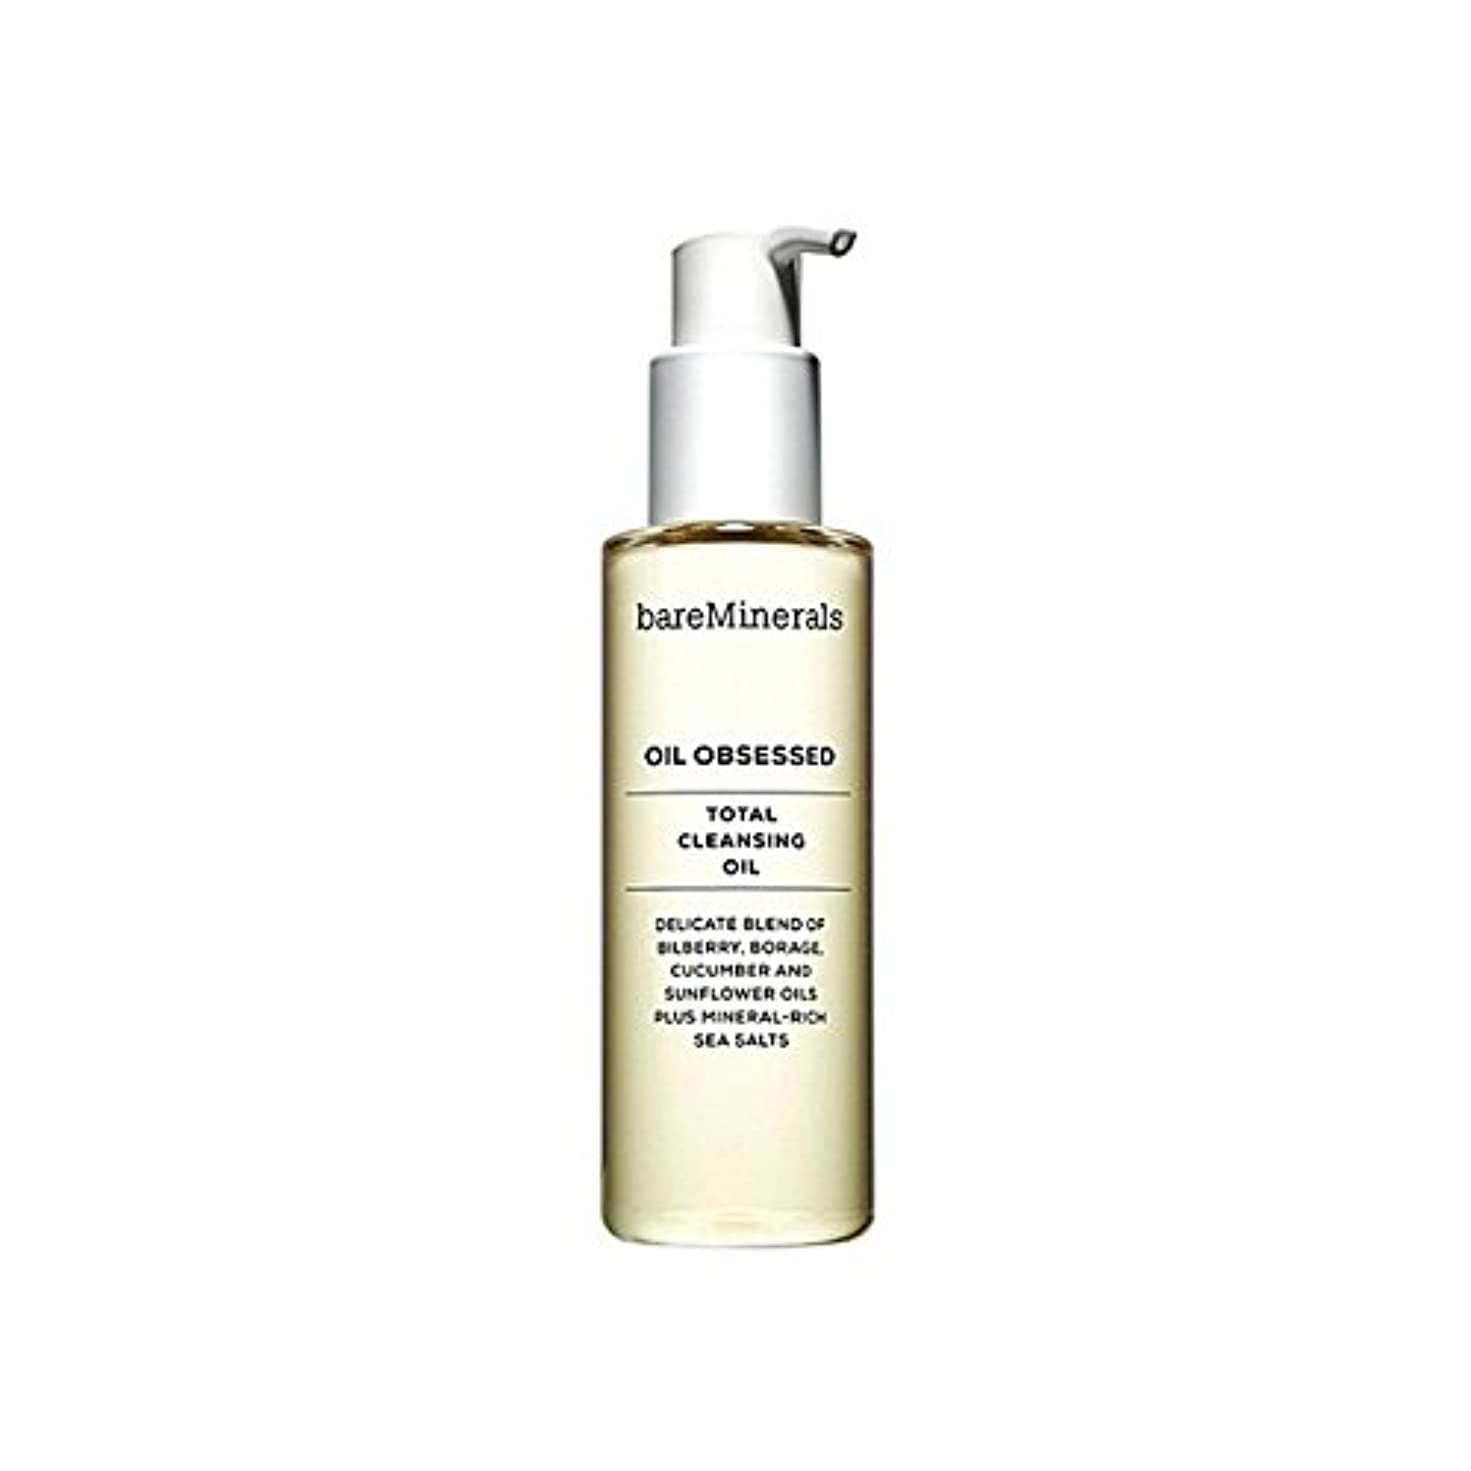 Bare Minerals Oil Obsessed Total Cleansing Oil 175Ml - 裸の鉱物油取り付かトータルクレンジングオイル175ミリリットル [並行輸入品]